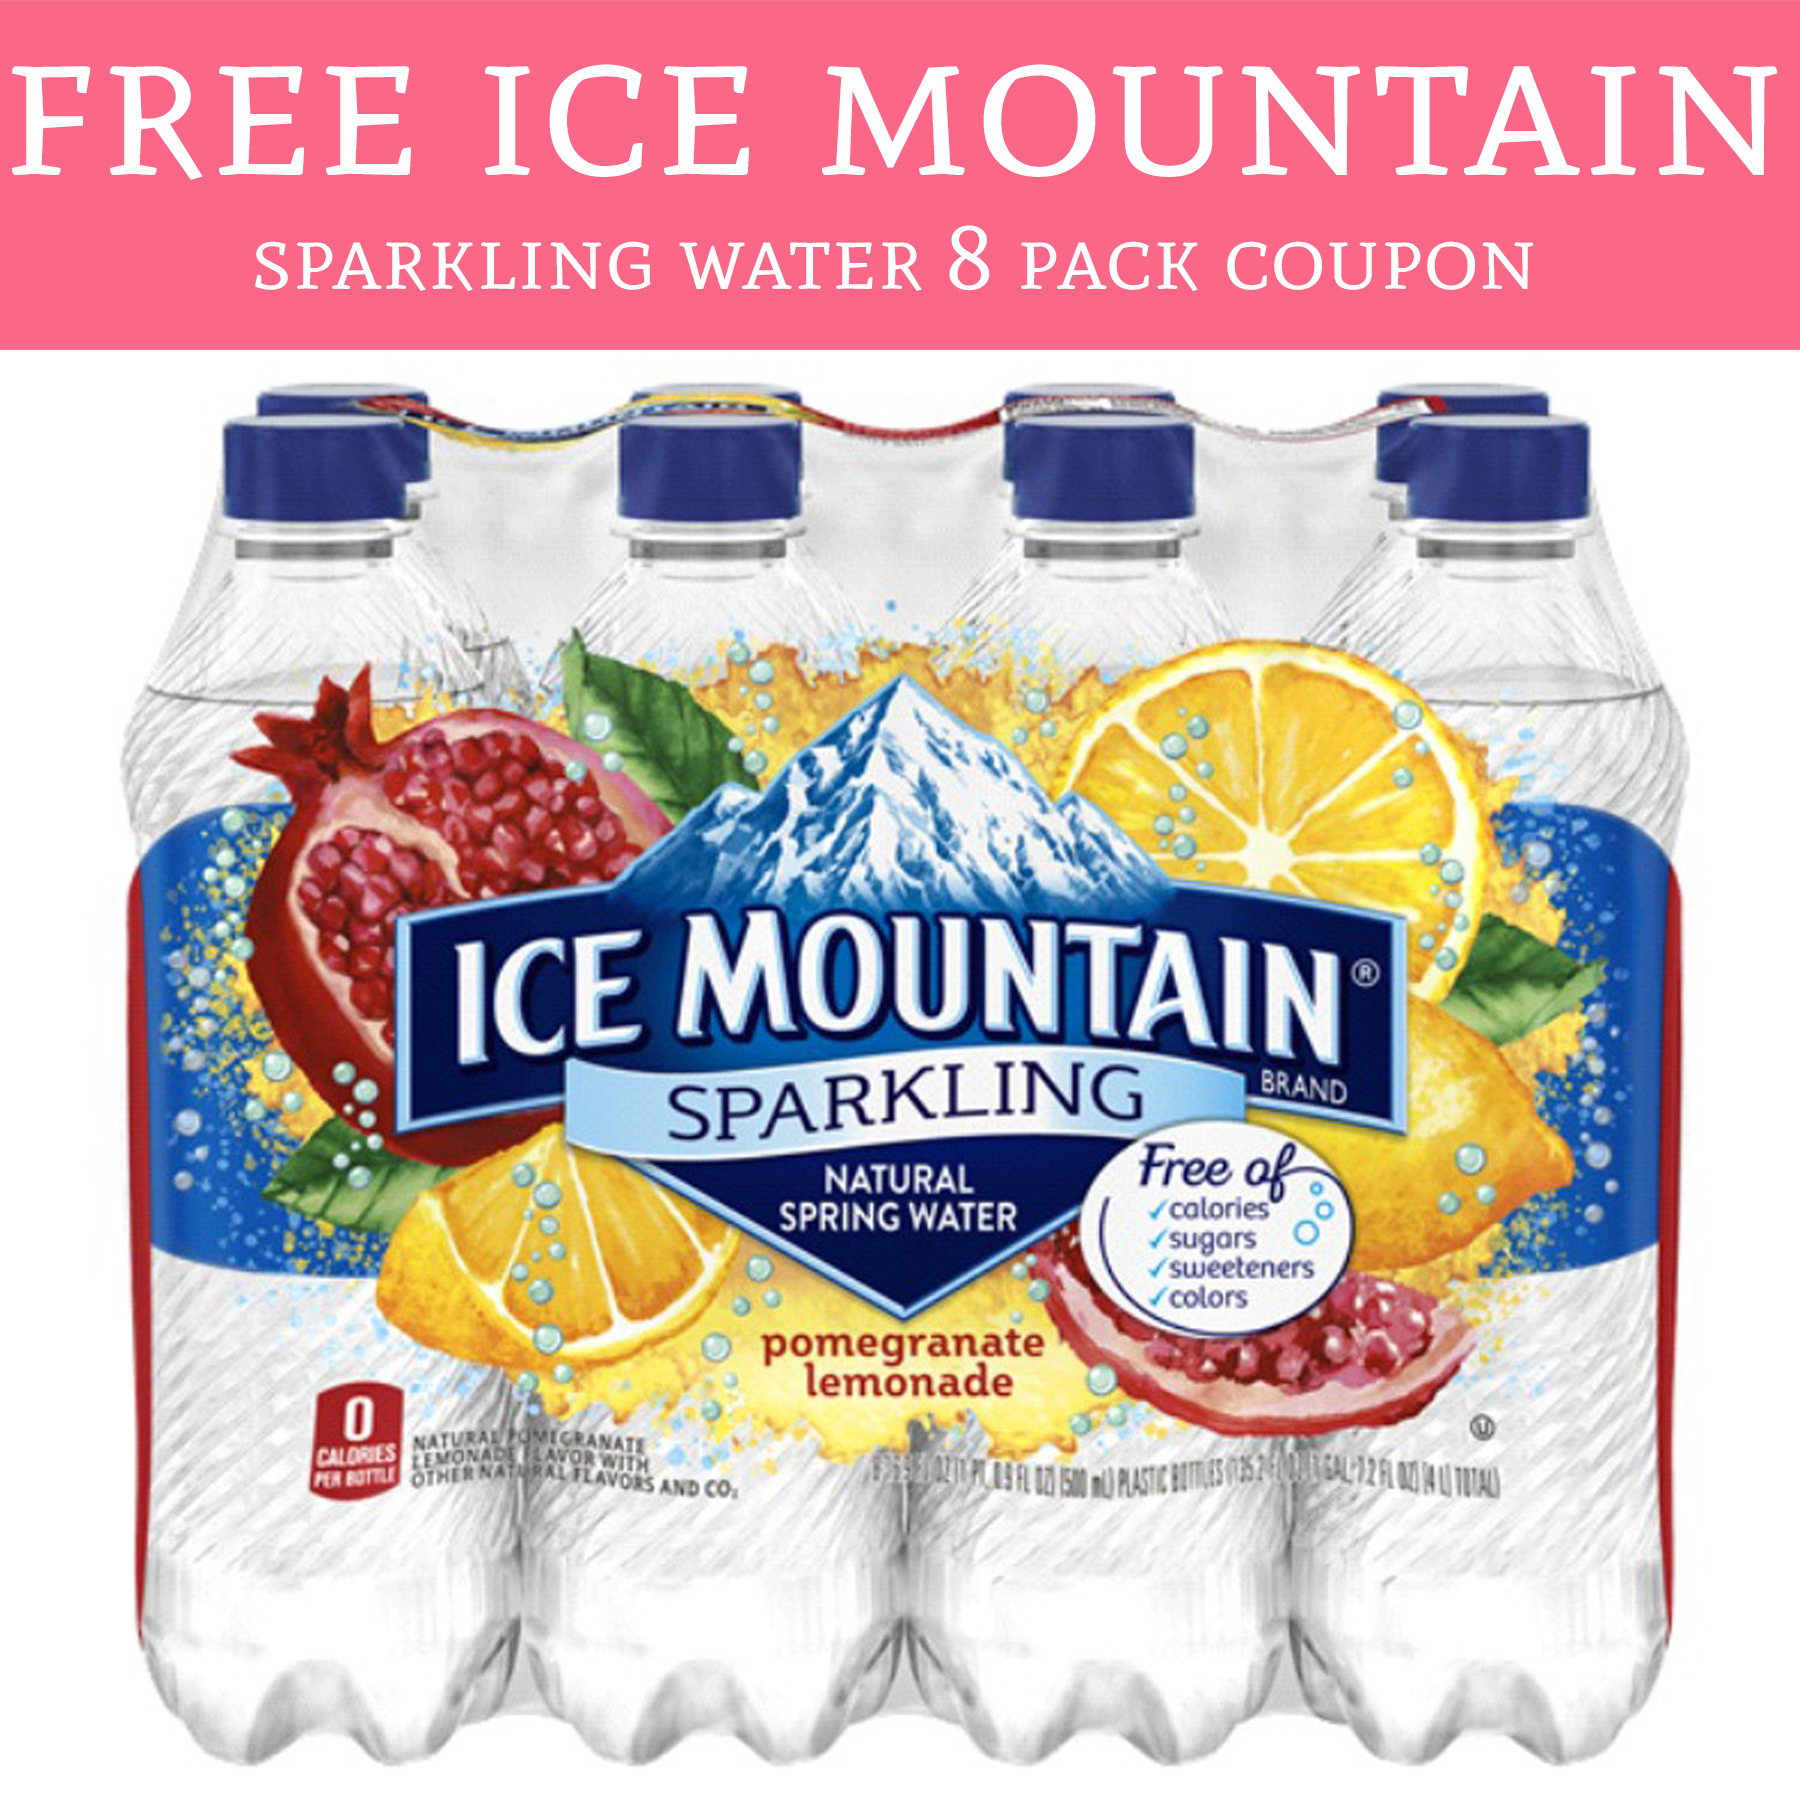 Zephyrhills Sports Bottle: HURRY! FREE Ice Mountain Sparkling Water 8 Pack Coupon